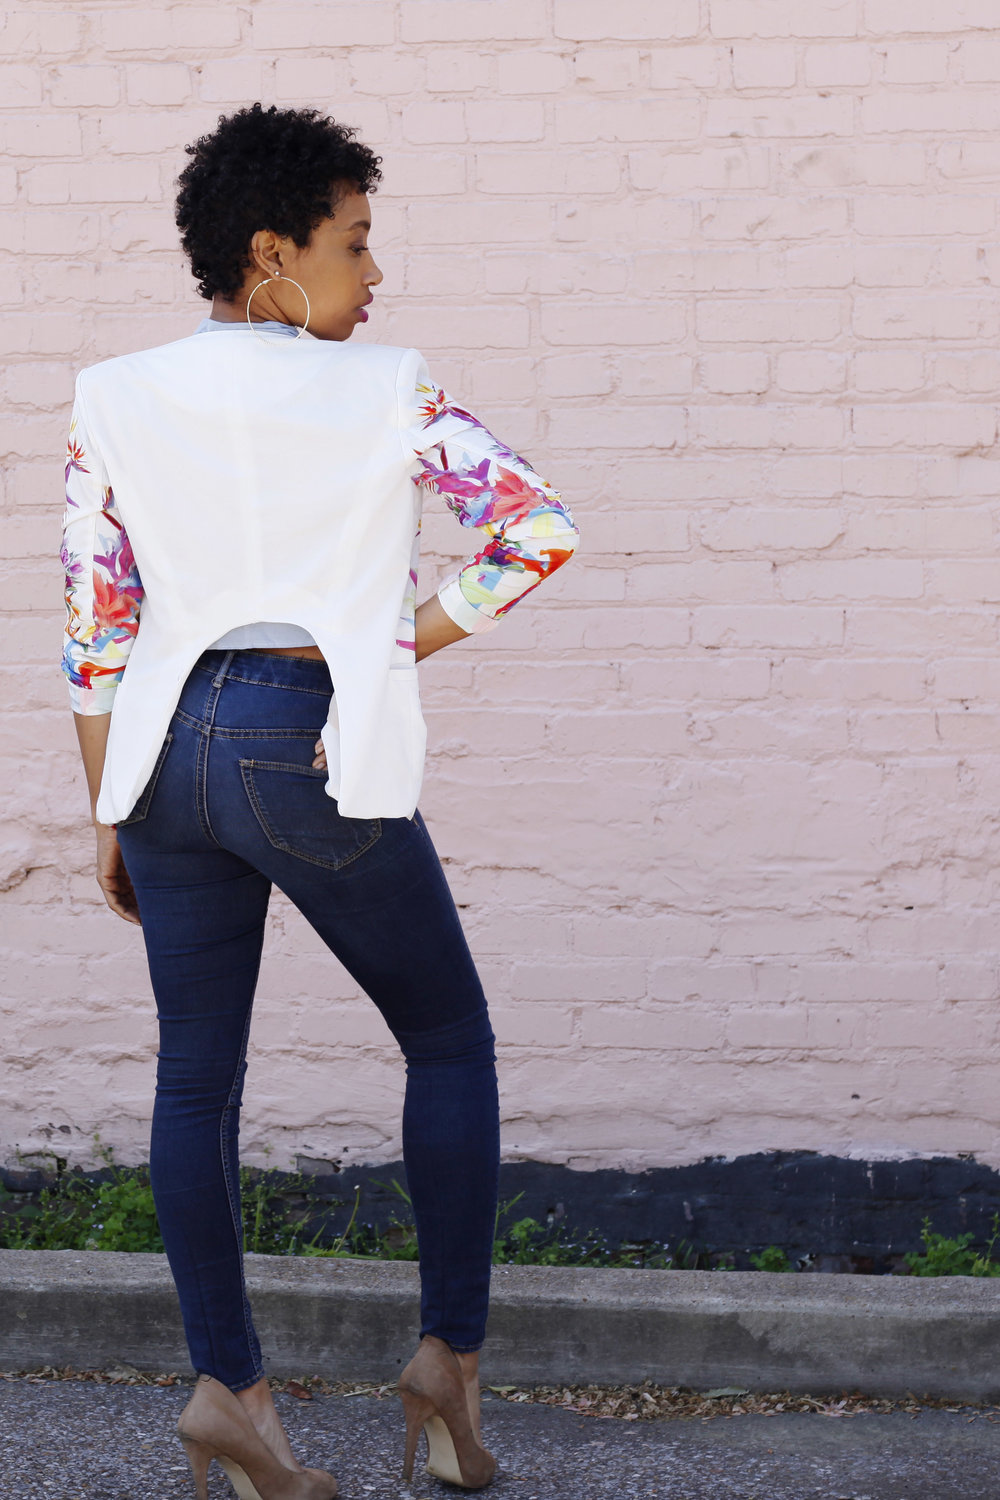 Andrea Fenise Memphis Fashion Blogger talks dressing for your body type with a floral blazer